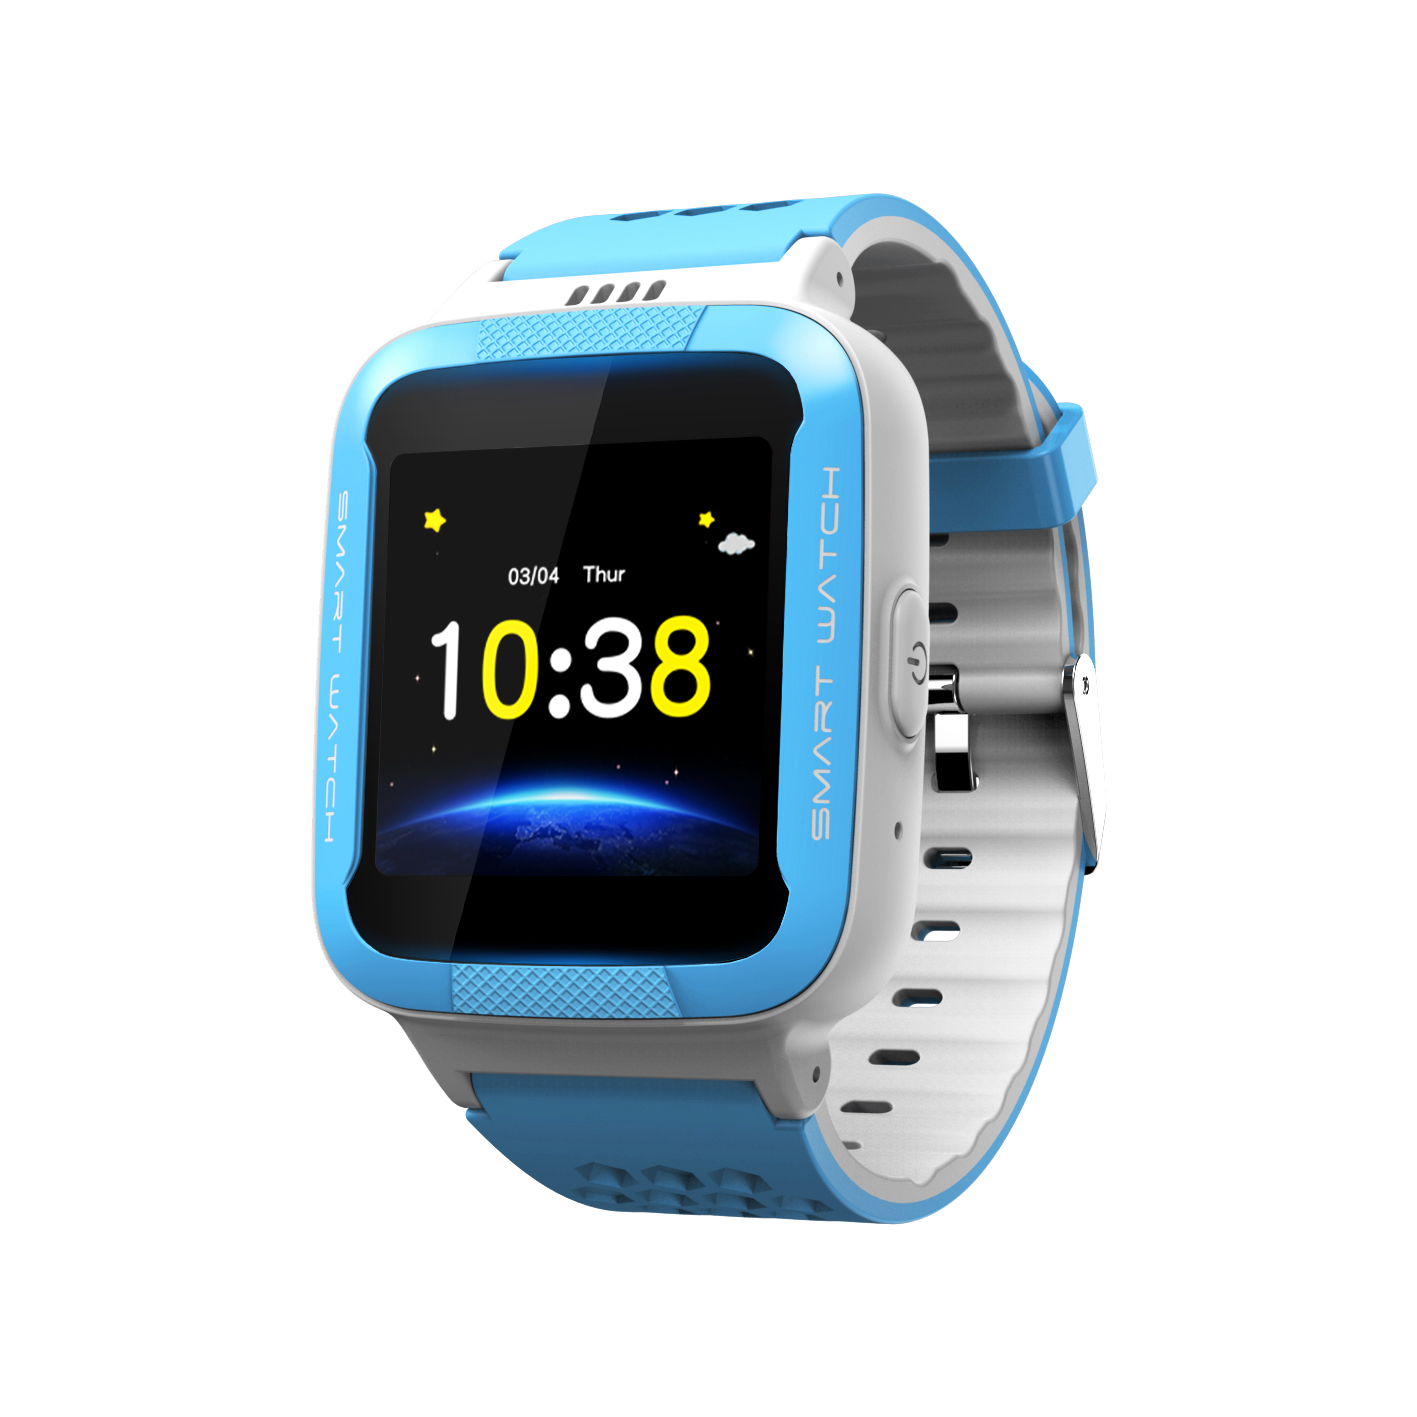 TD09 Kids Smart Watch Two-way communication Voice Chat Location LBS History Track Smart Watch Kids фото